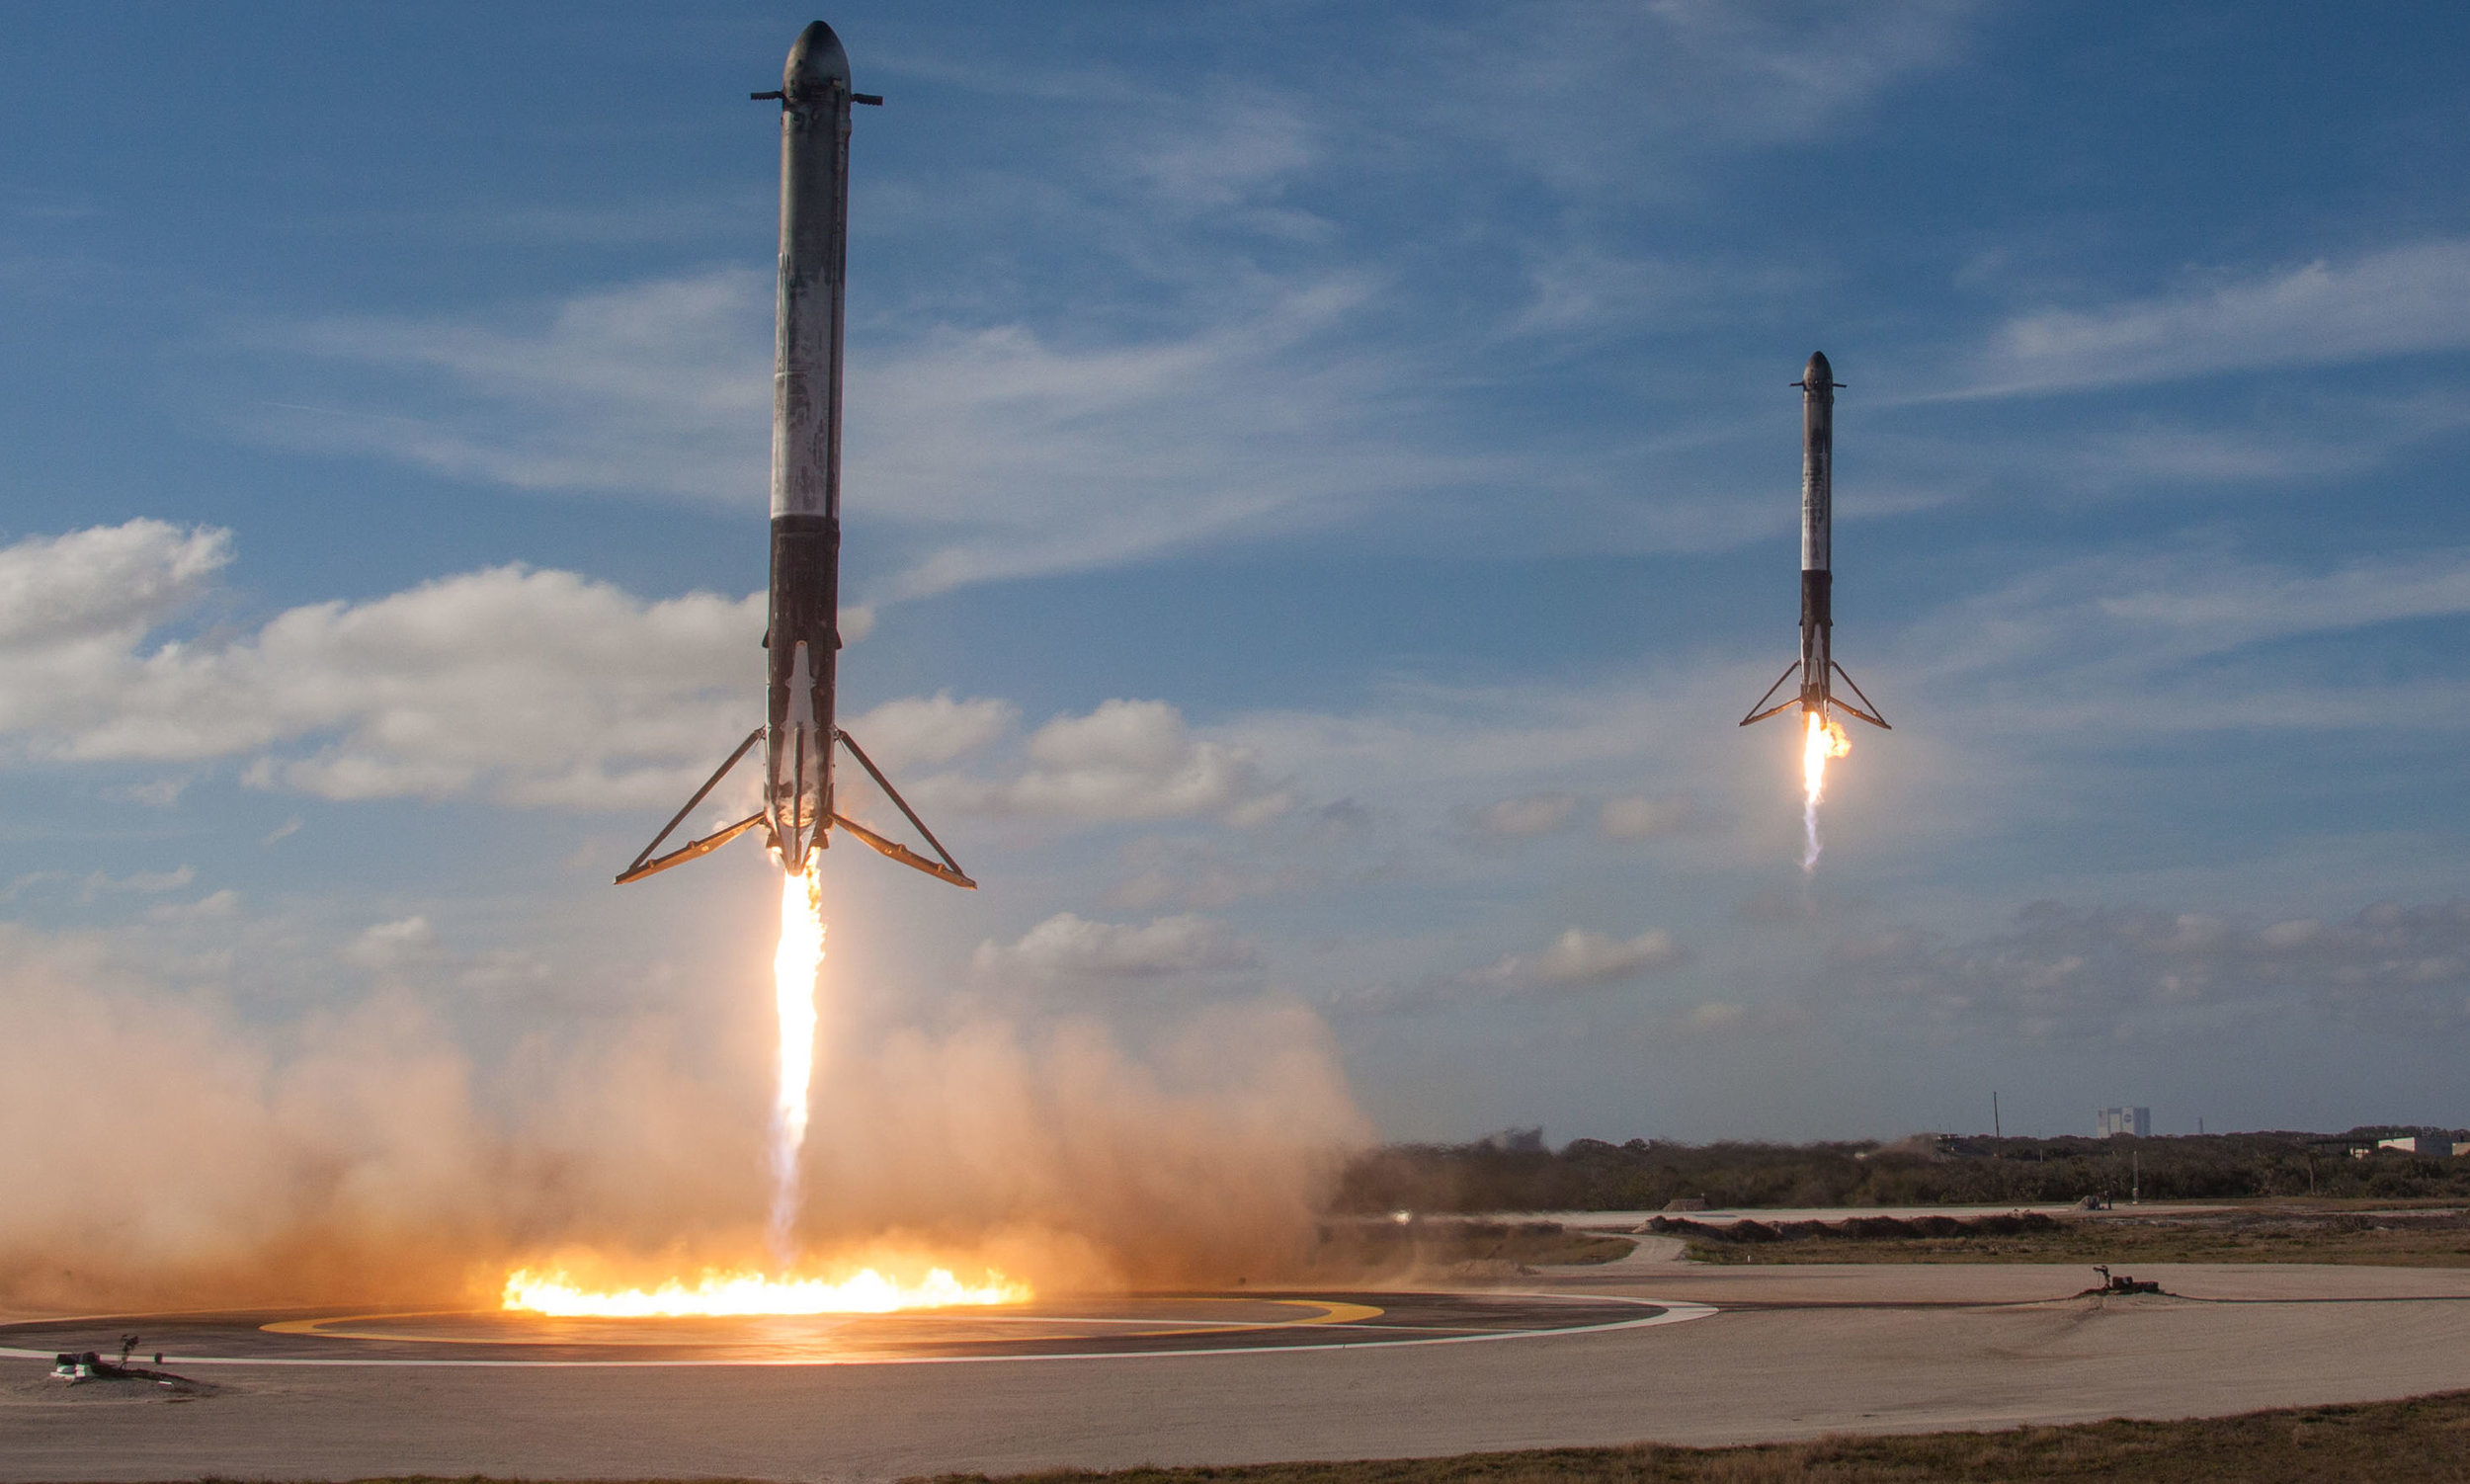 Two of SpaceX's outer cores touch down on concrete landing pads at Cape Canaveral, Florida. Credit: SpaceX